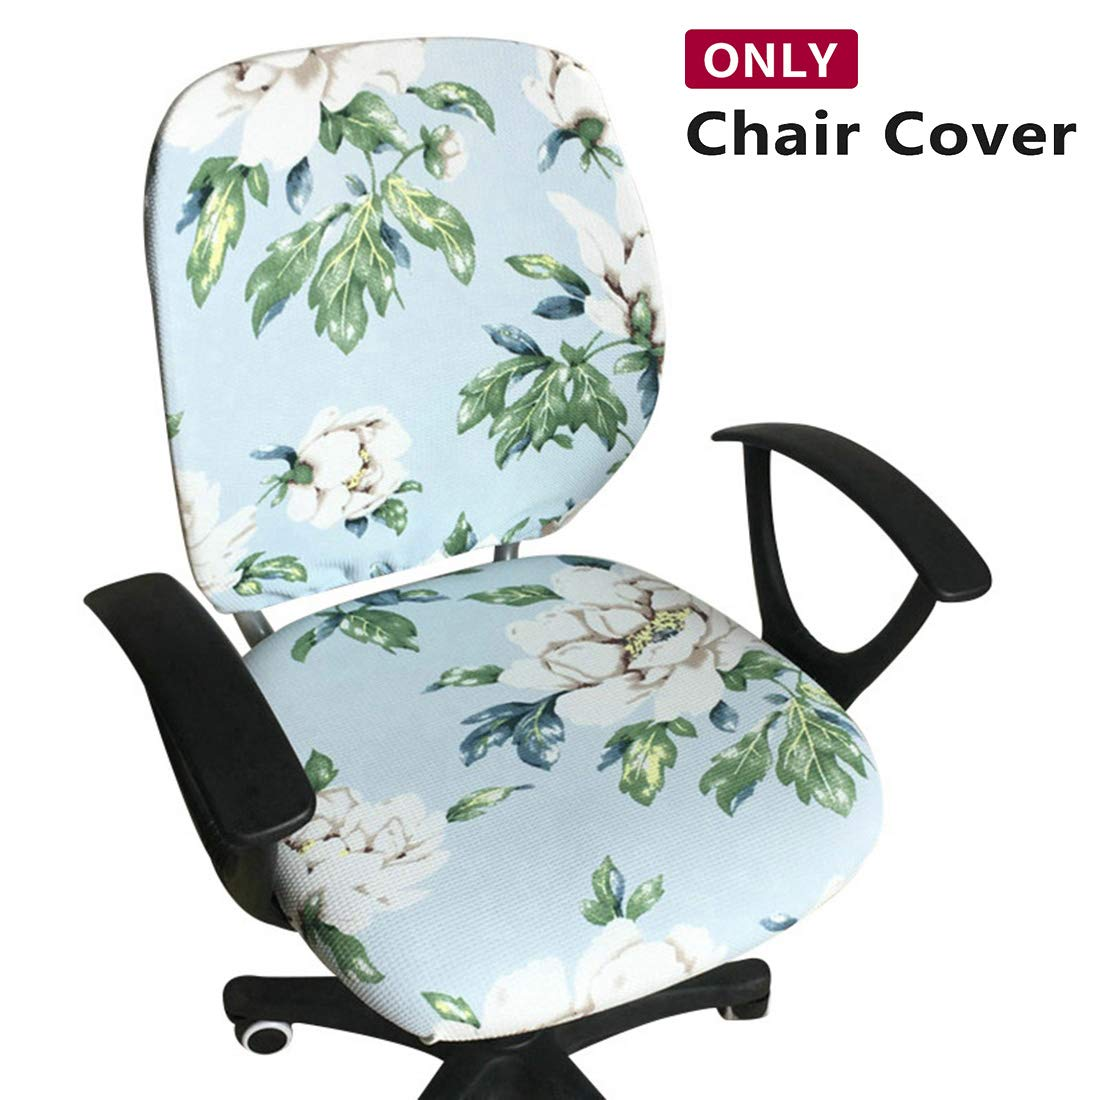 Chair Cover Split Office Computer Chair Seat Cover Elastic Cover Comfortable